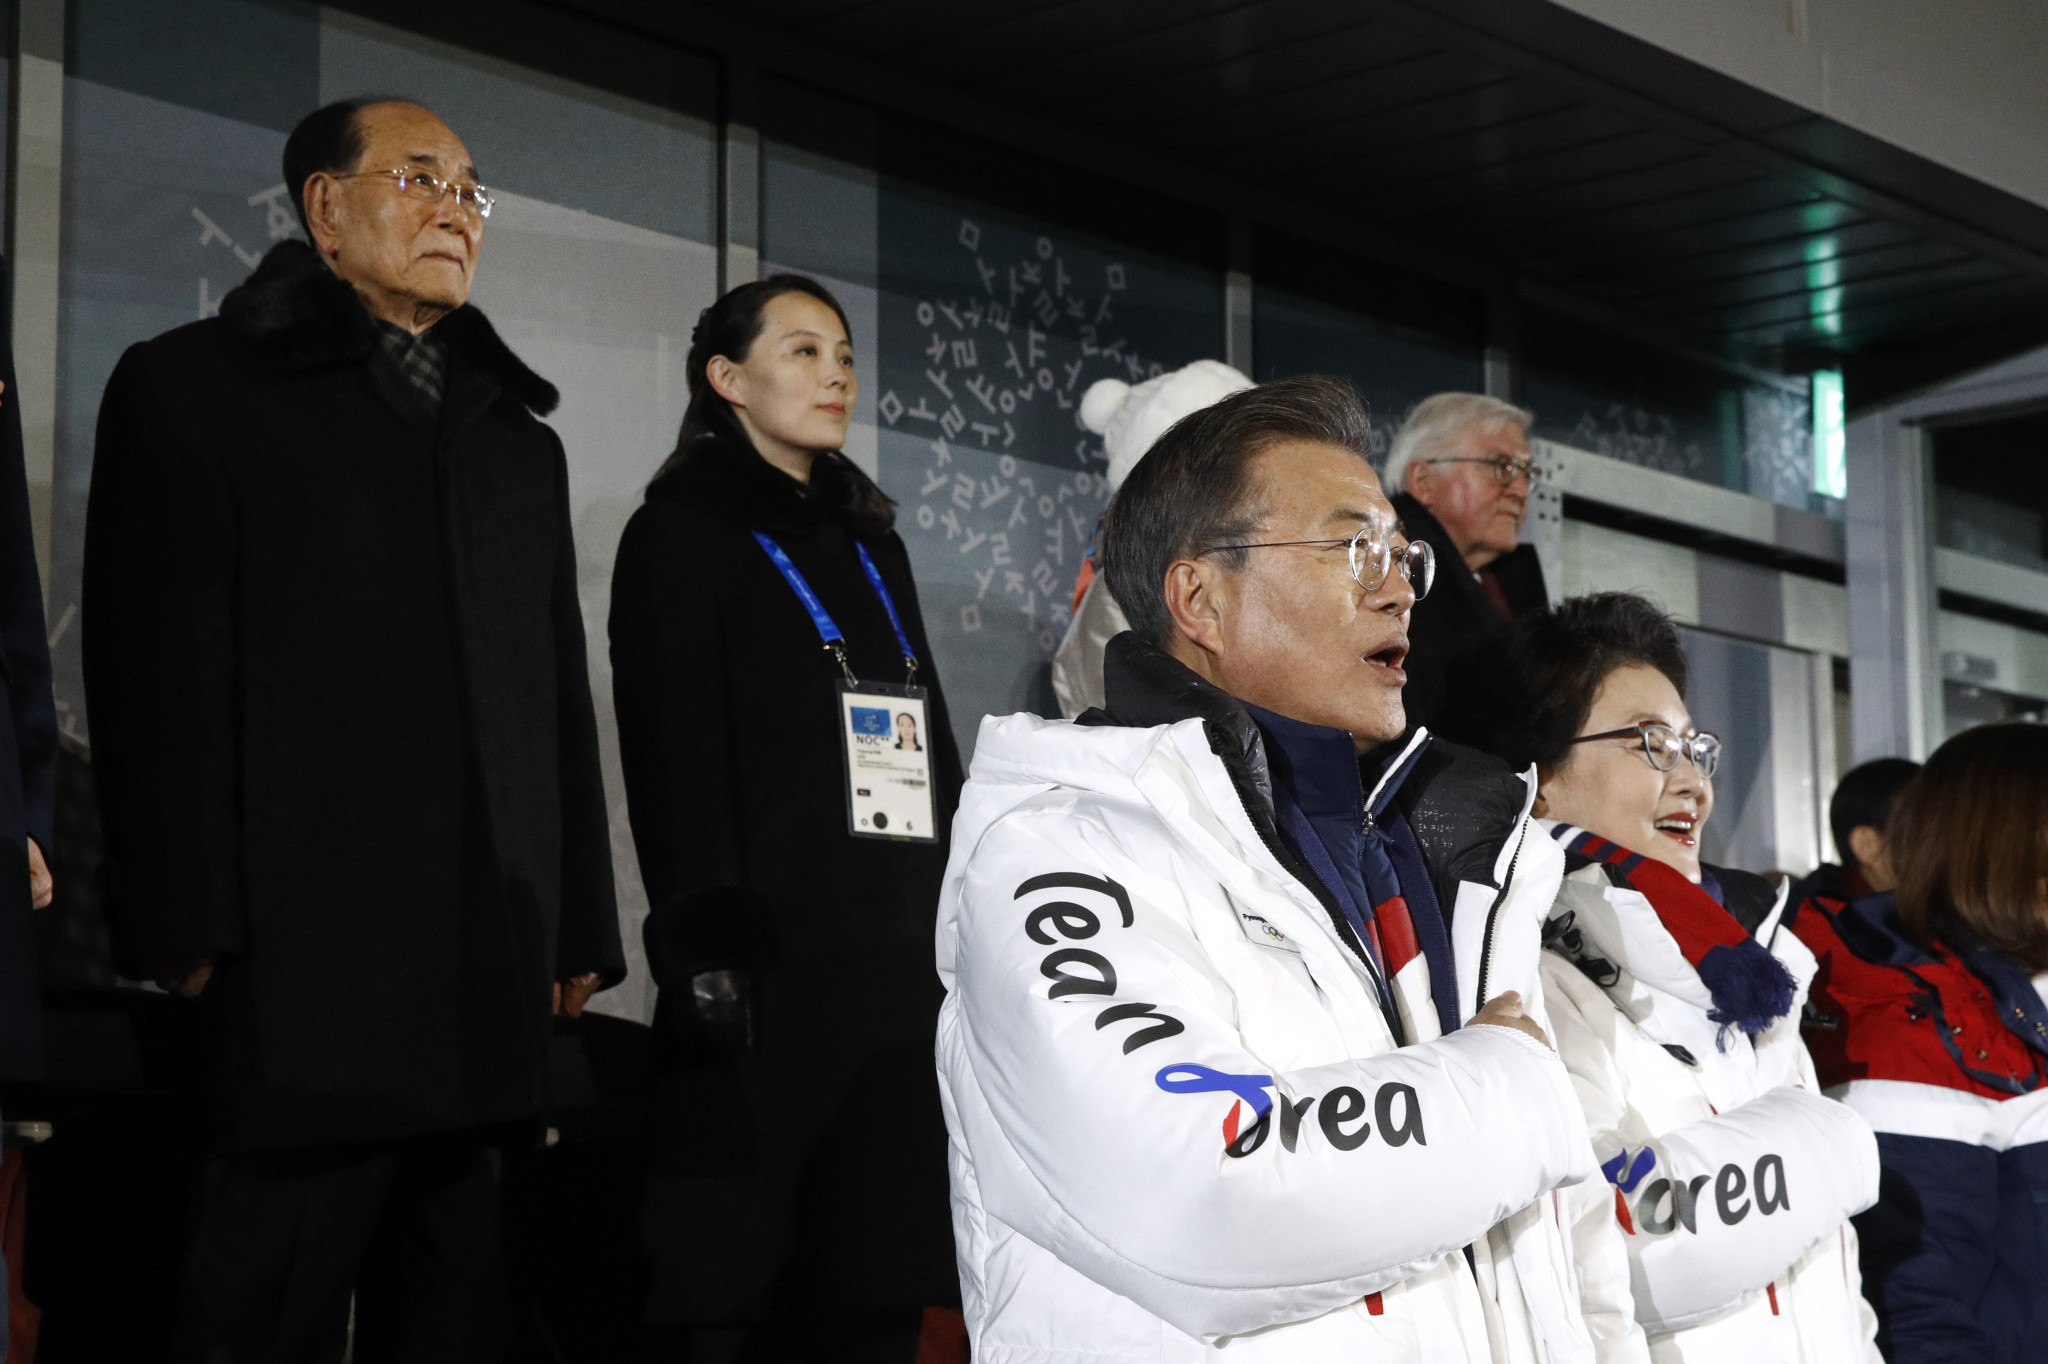 South Korean President Moon Jae-in at the Opening Ceremony of Pyeongchang 2018, standing in front of the delegation from North Korea ©Getty Images